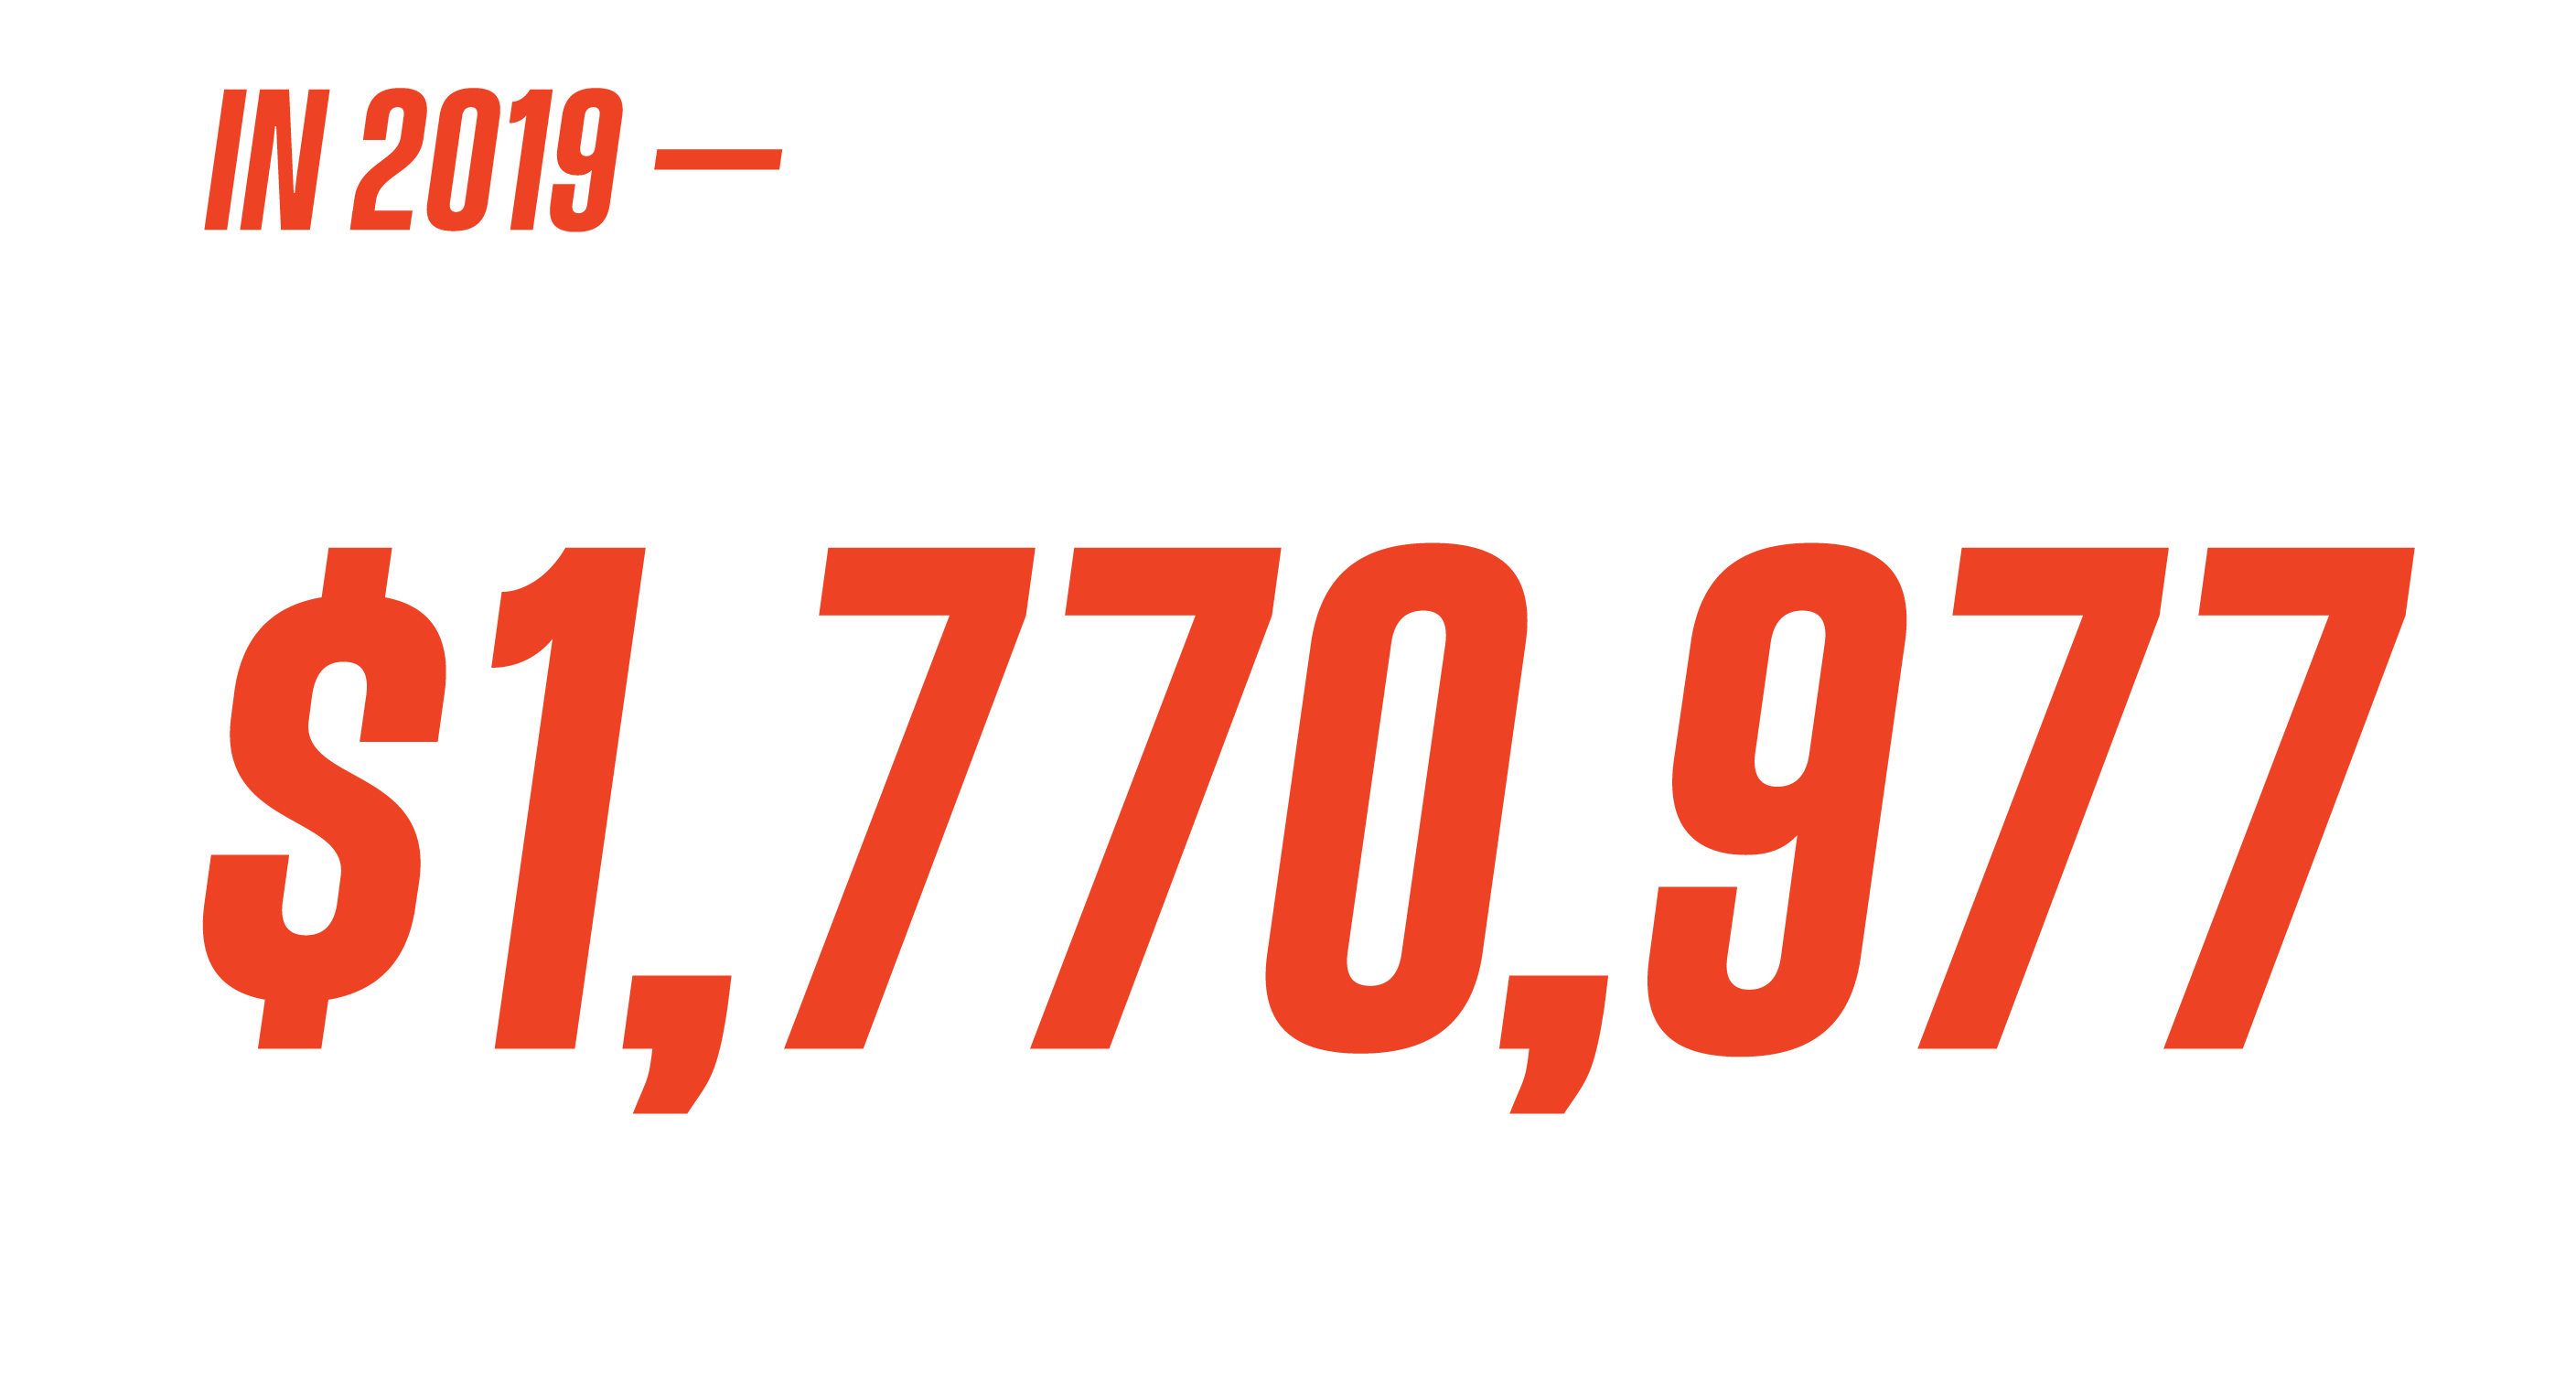 In 2019, Red Rocks Church invested $1,770,977 in Local and International Ministry